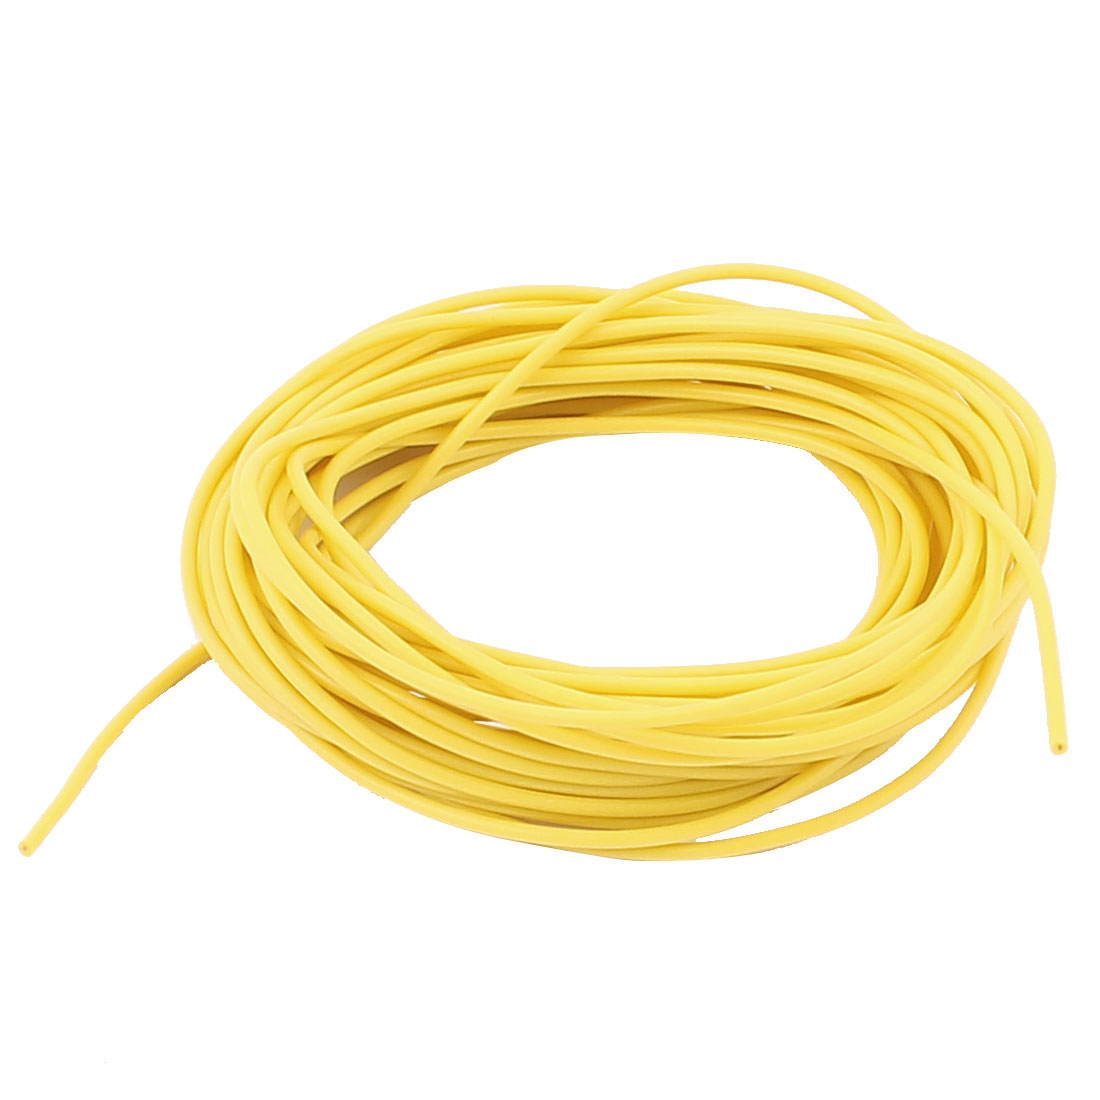 5M 28AWG Electric Copper Core Flexible Silicone Wire Cable Yellow